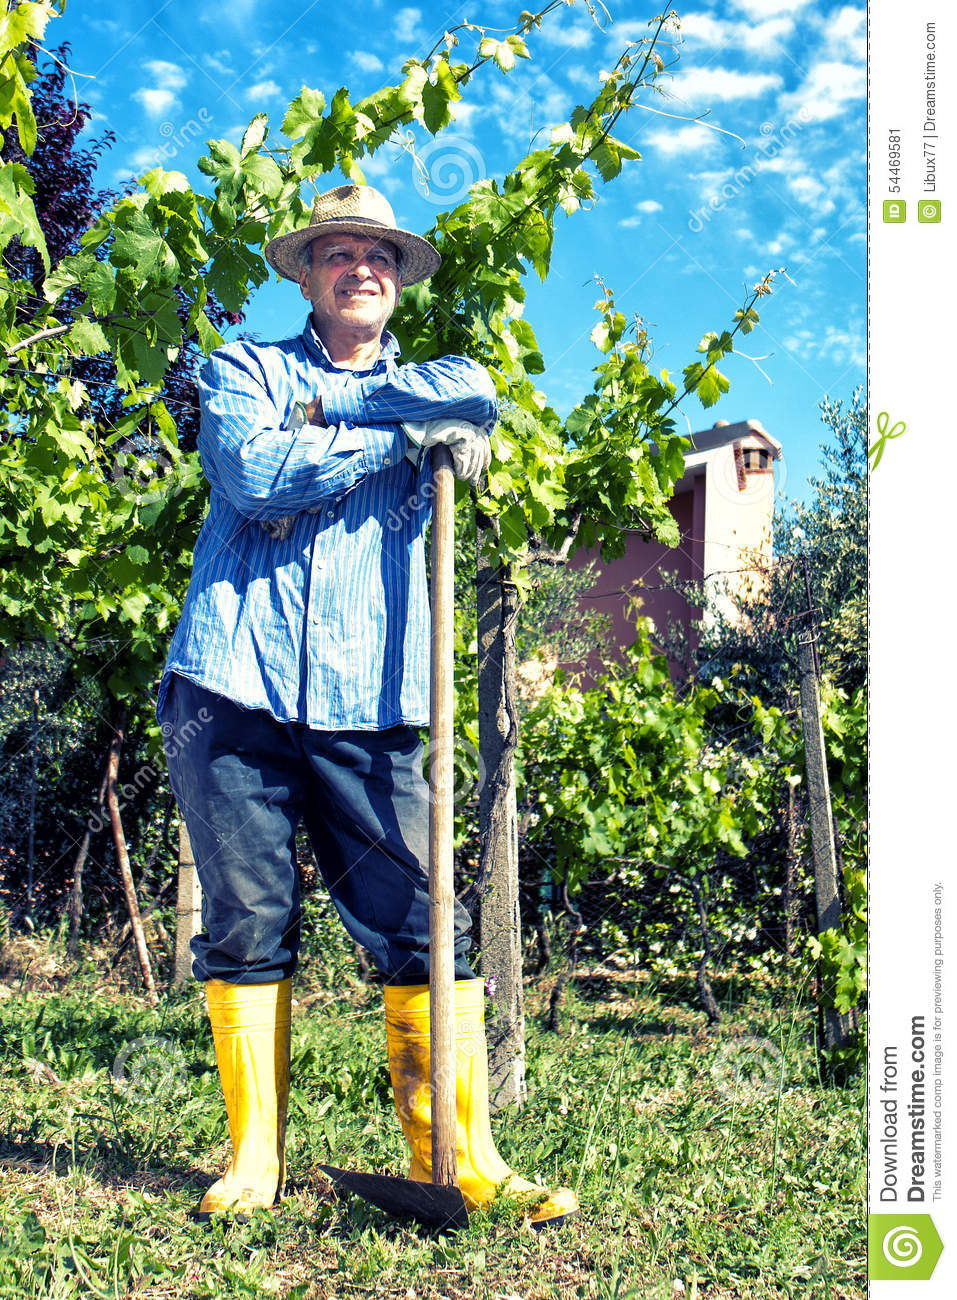 Farmer Straw Hat Spade Portrait Break Vineyard